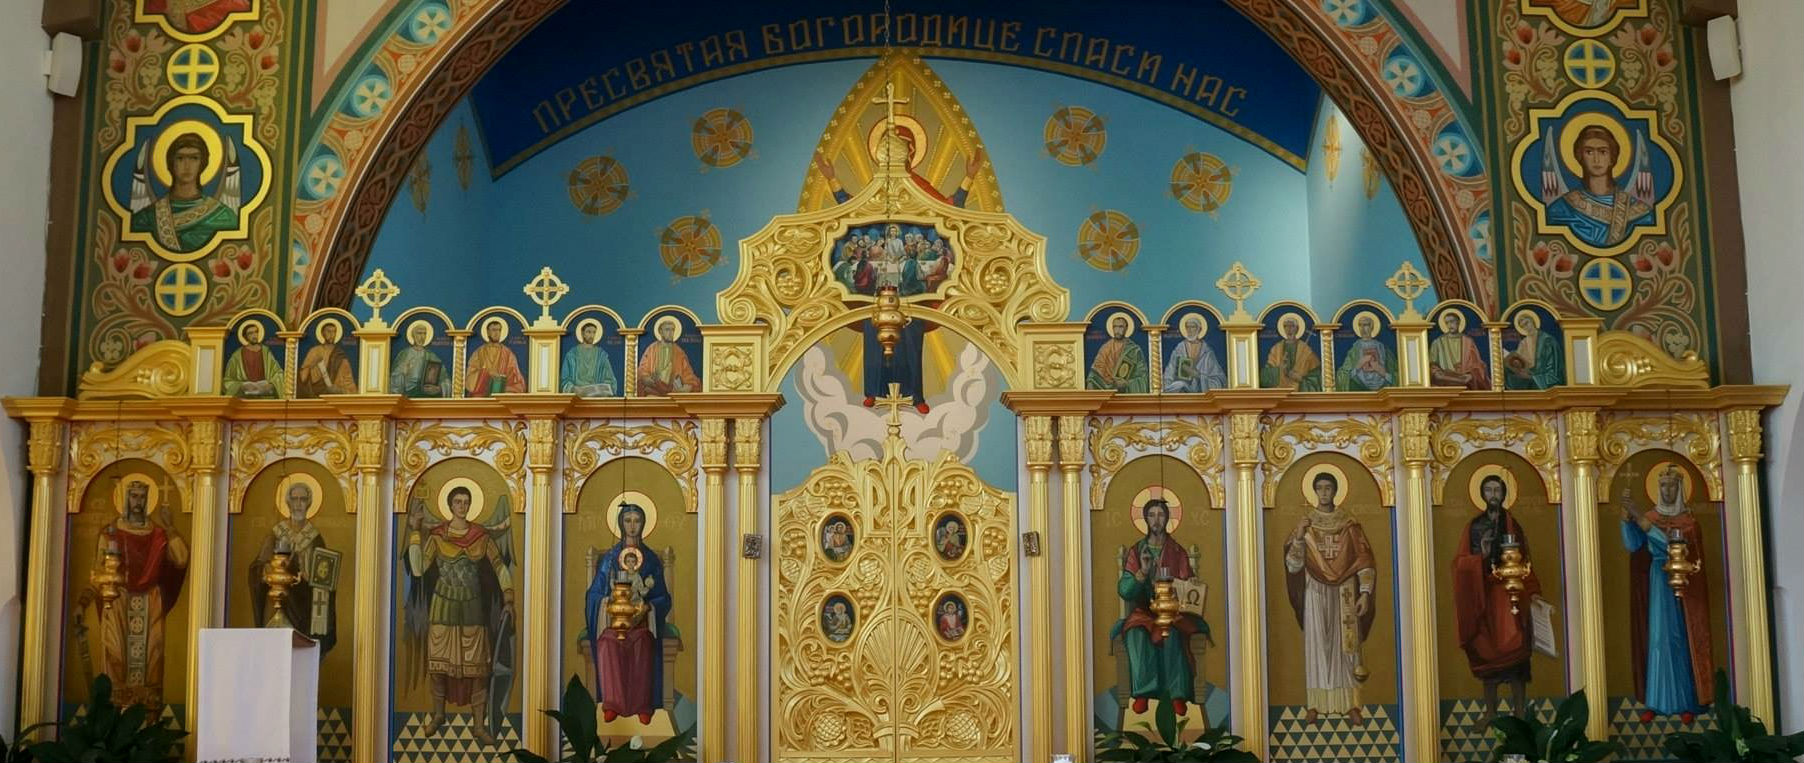 Ukrainian Catholic Church, L.A.